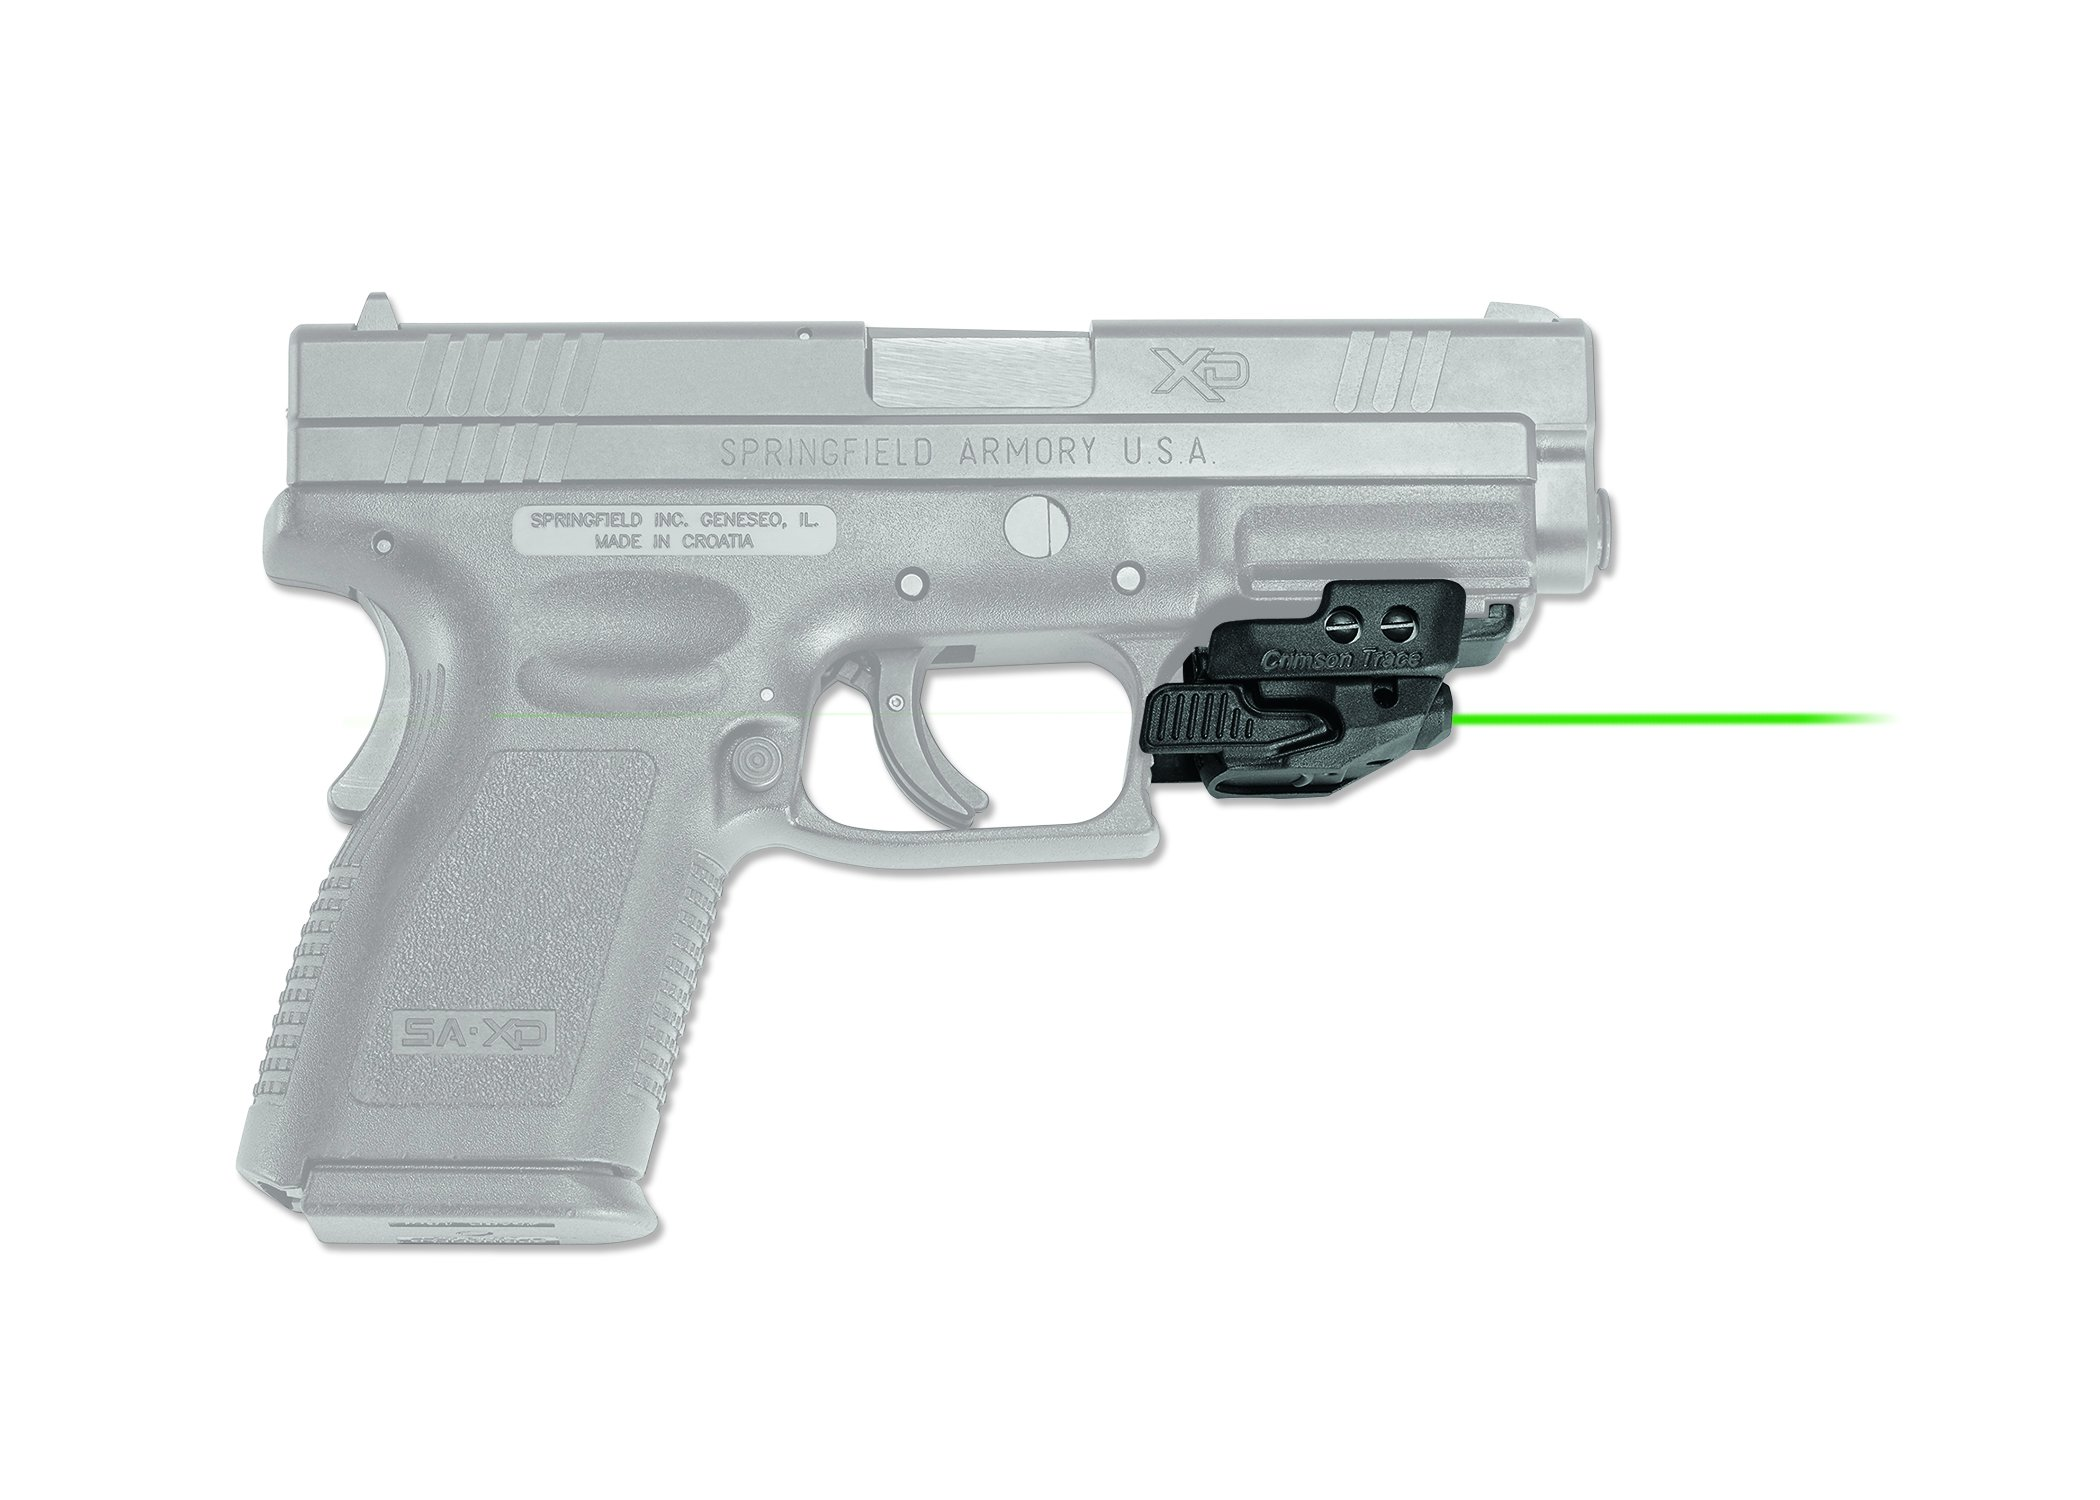 Crimson Trace CMR-206 Rail Master Universal Green Laser Sight